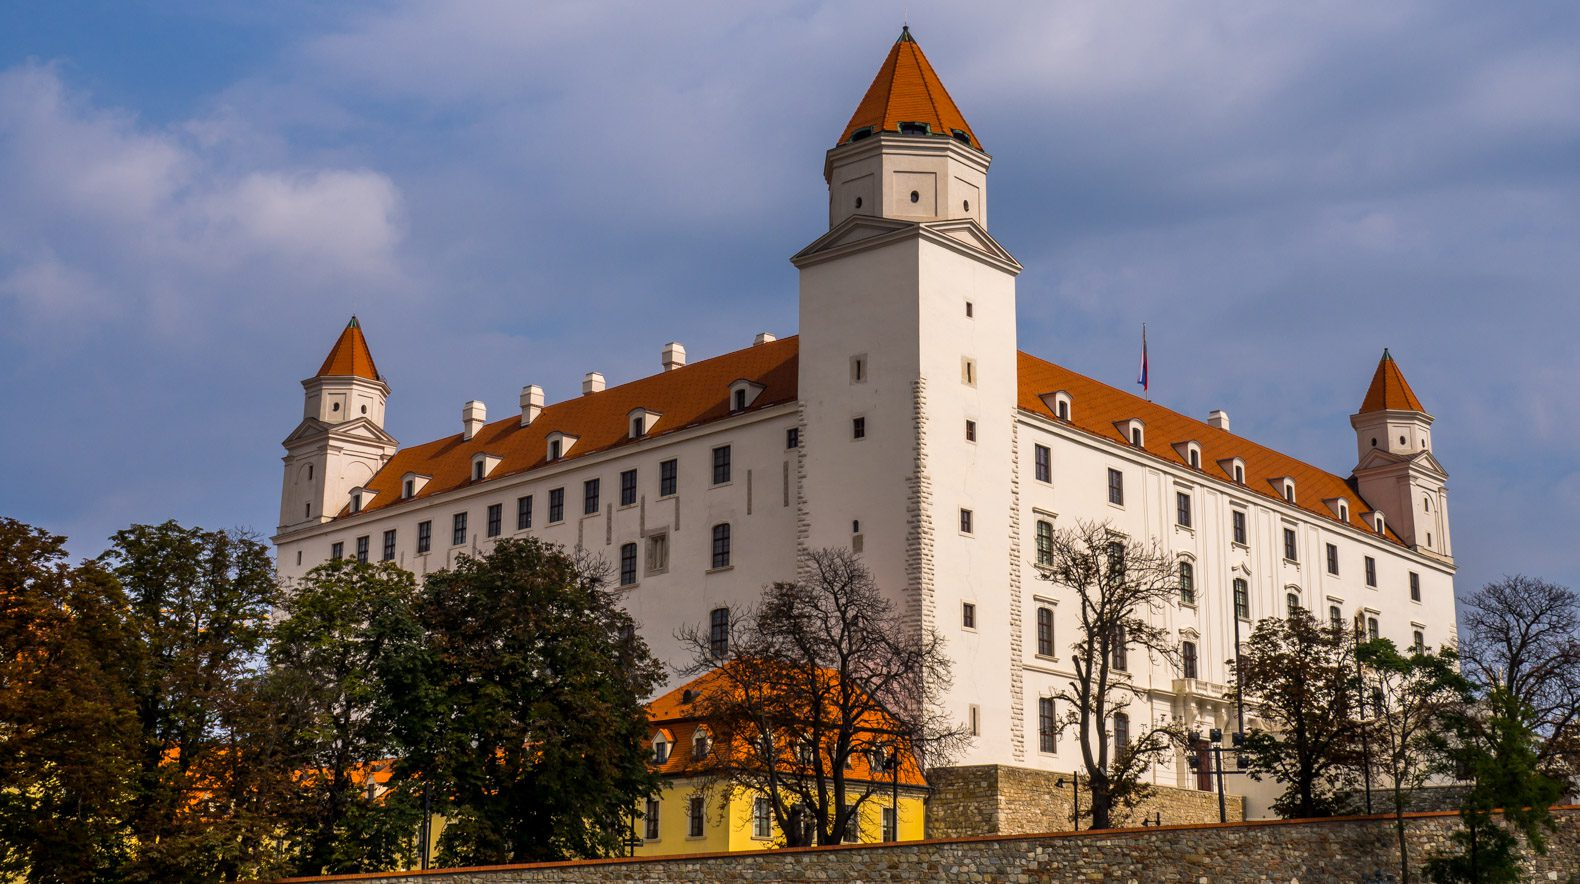 24 hours in Bratislava: things to do and see